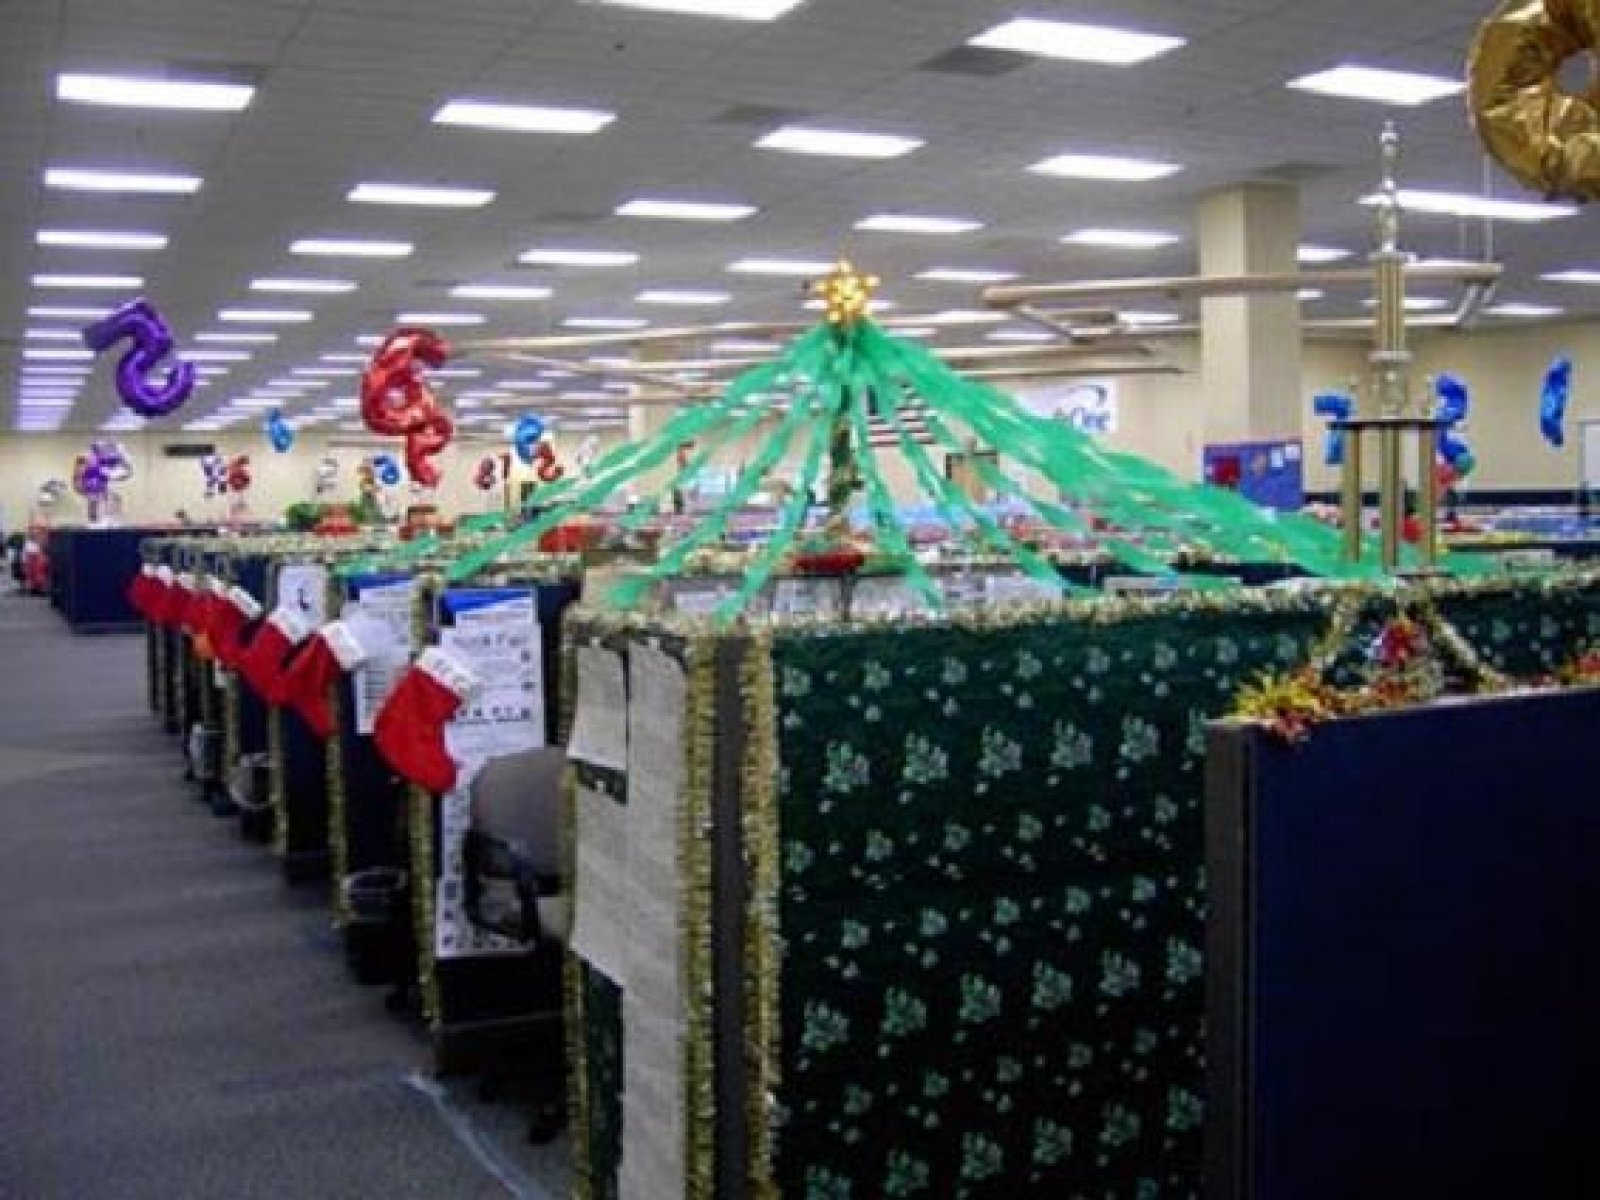 10 Spectacular Office Decorating Ideas For Christmas christmas office decorating themes fun for christmas 2021